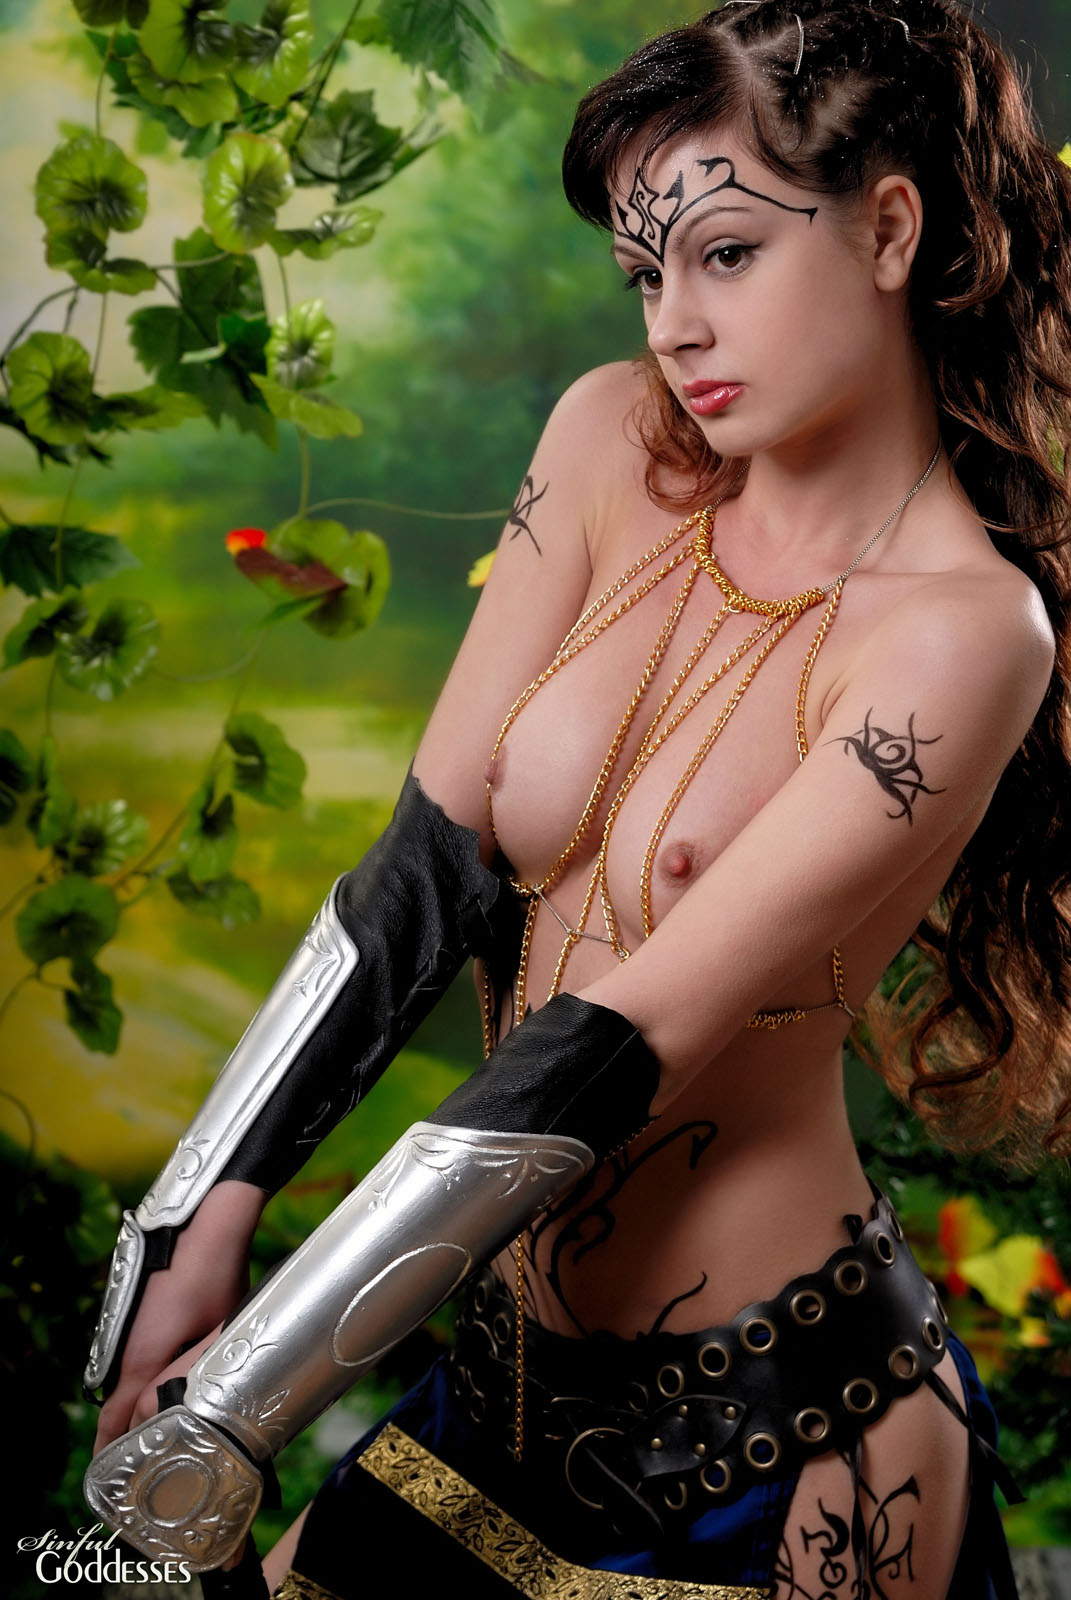 Girl hot warrior topless adult films